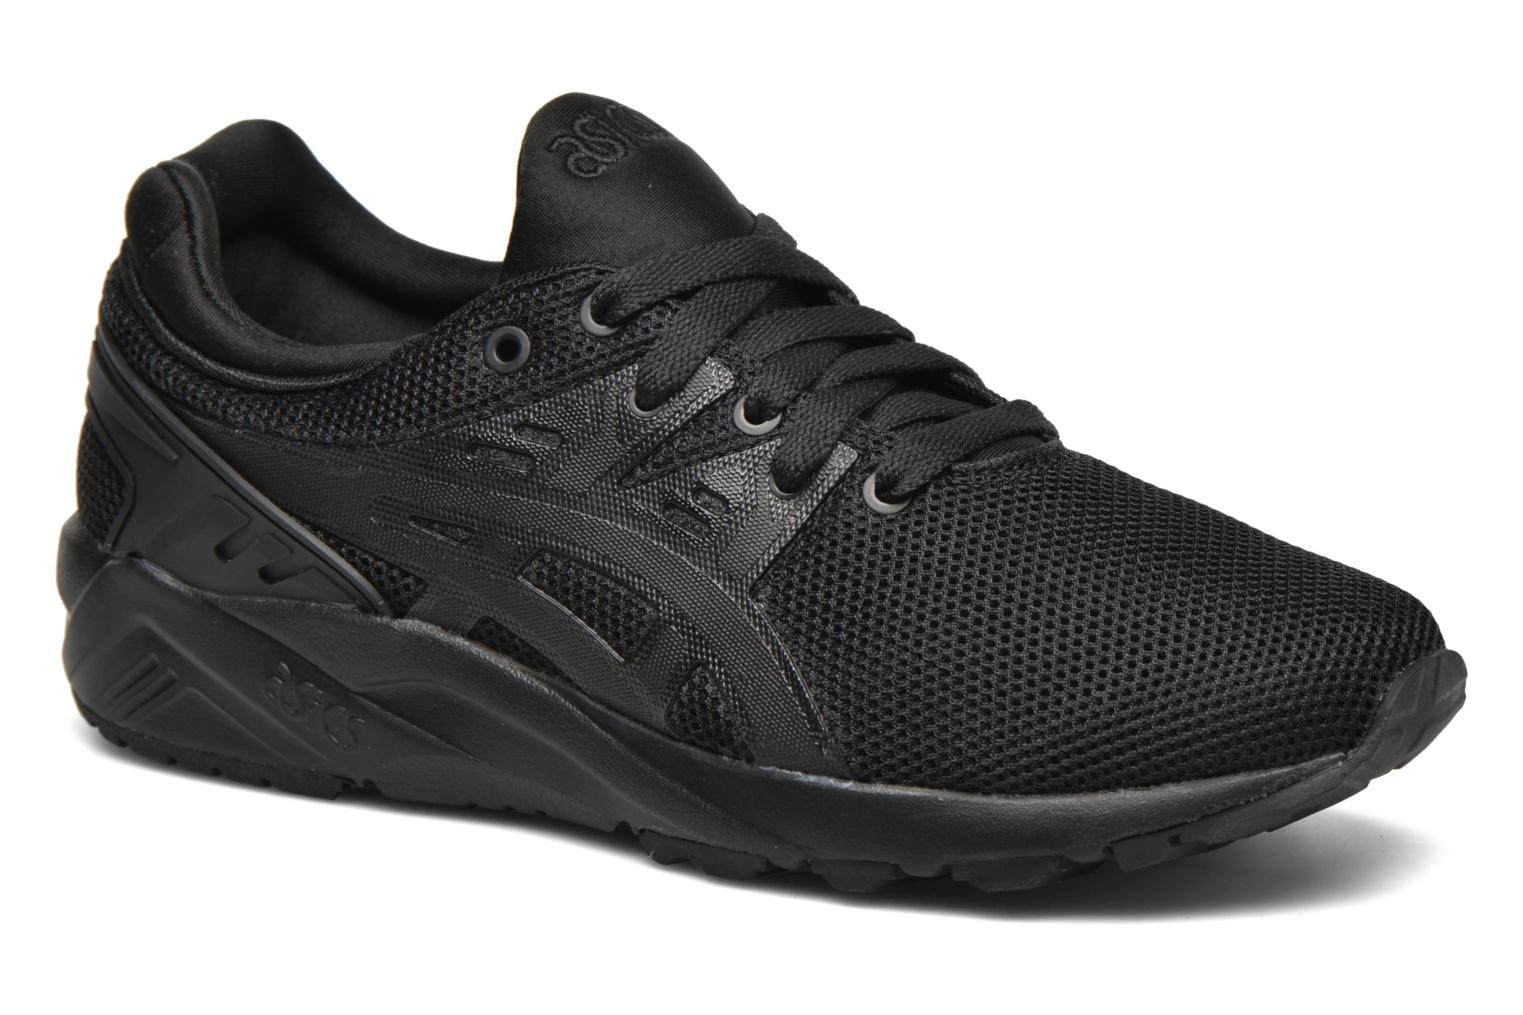 Gel-Kayano Trainer Evo W Black1Black